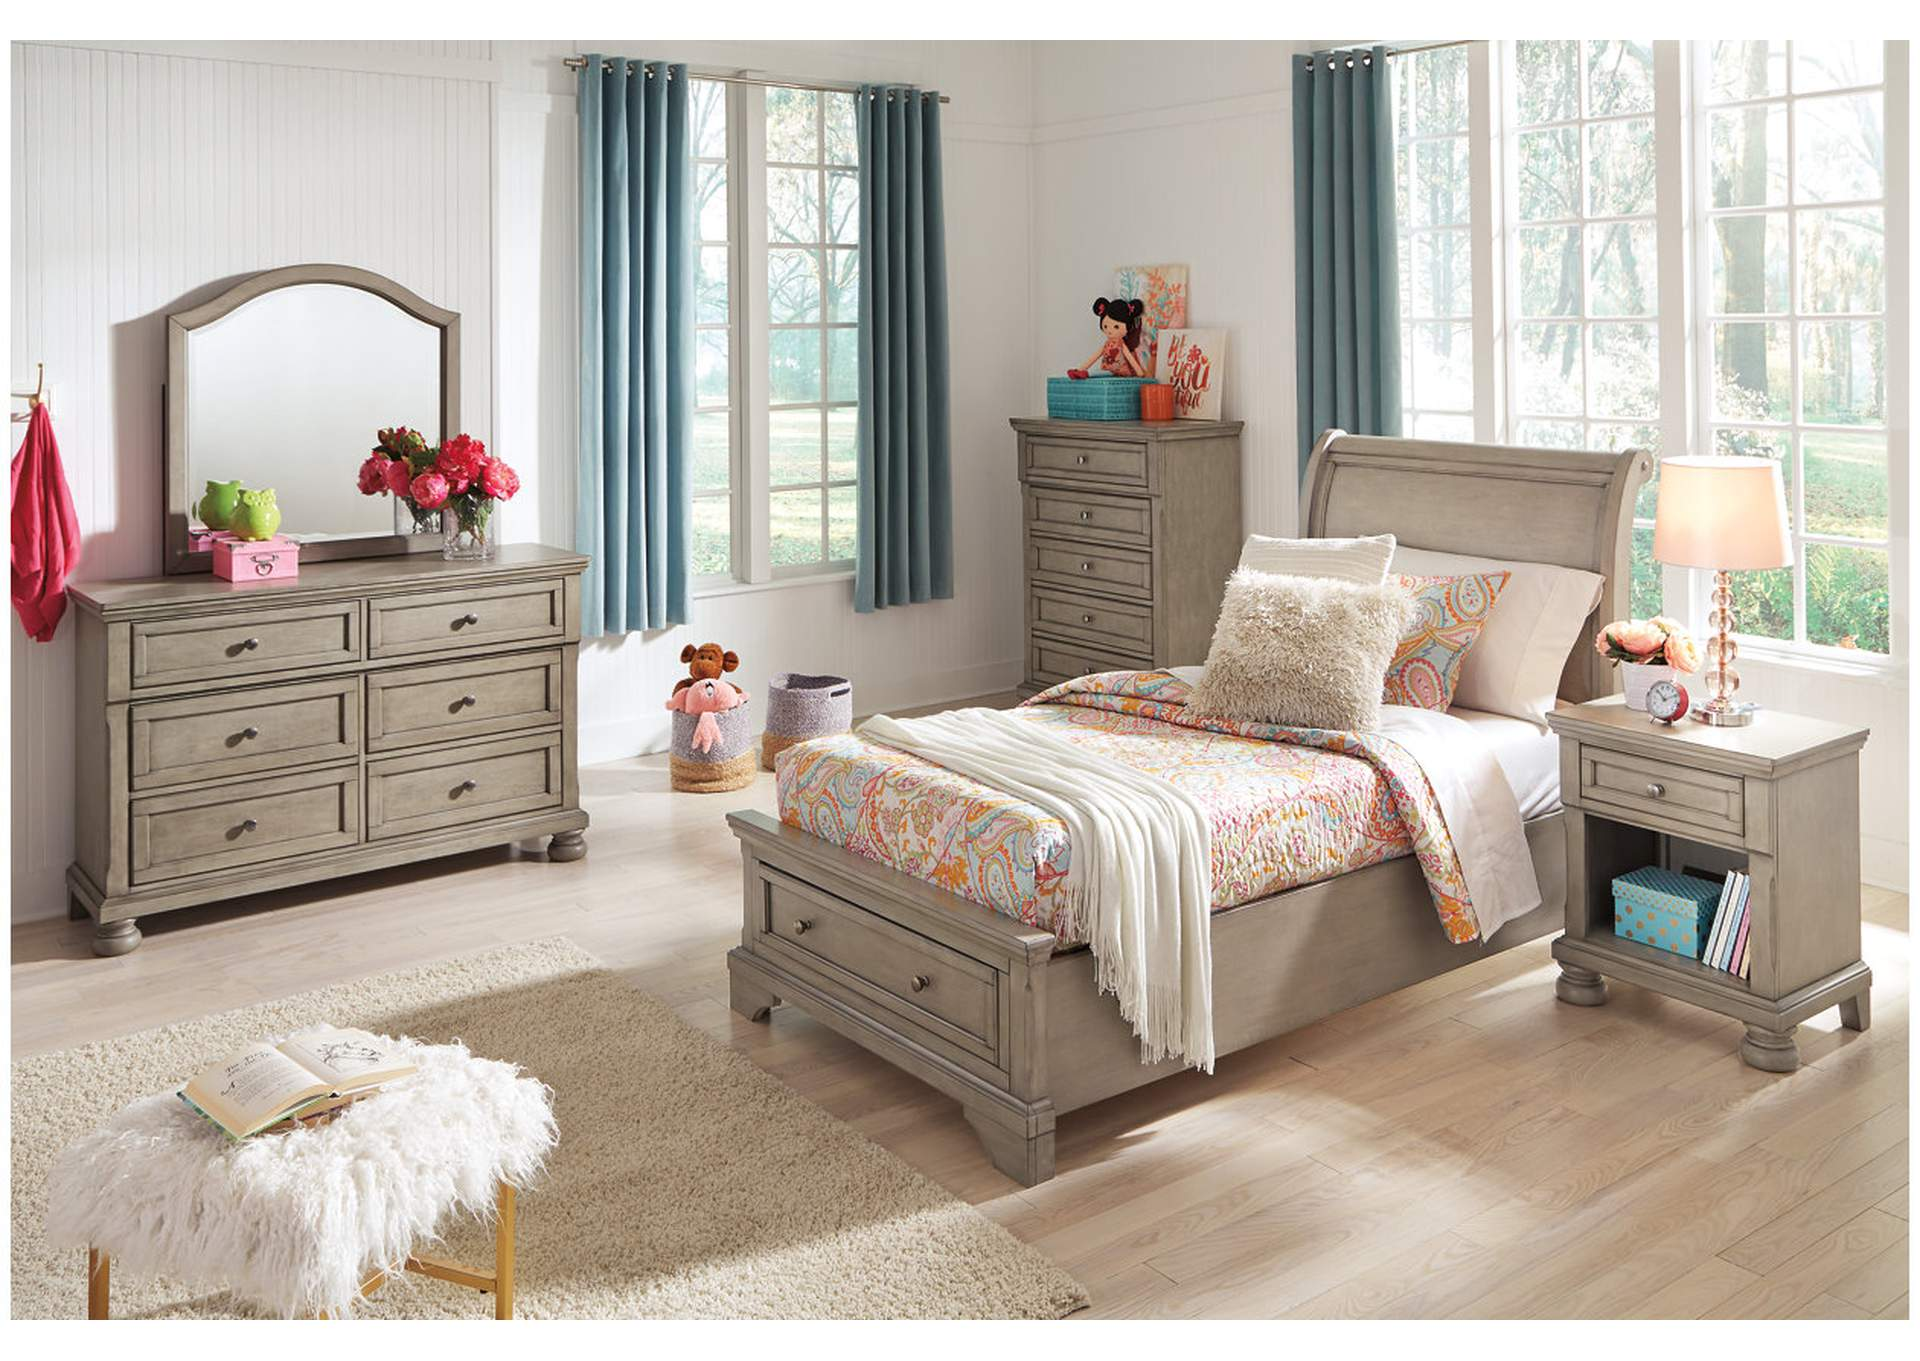 Lettner Light Gray Twin Sleigh Storage Bed w/Dresser and Mirror,Signature Design By Ashley